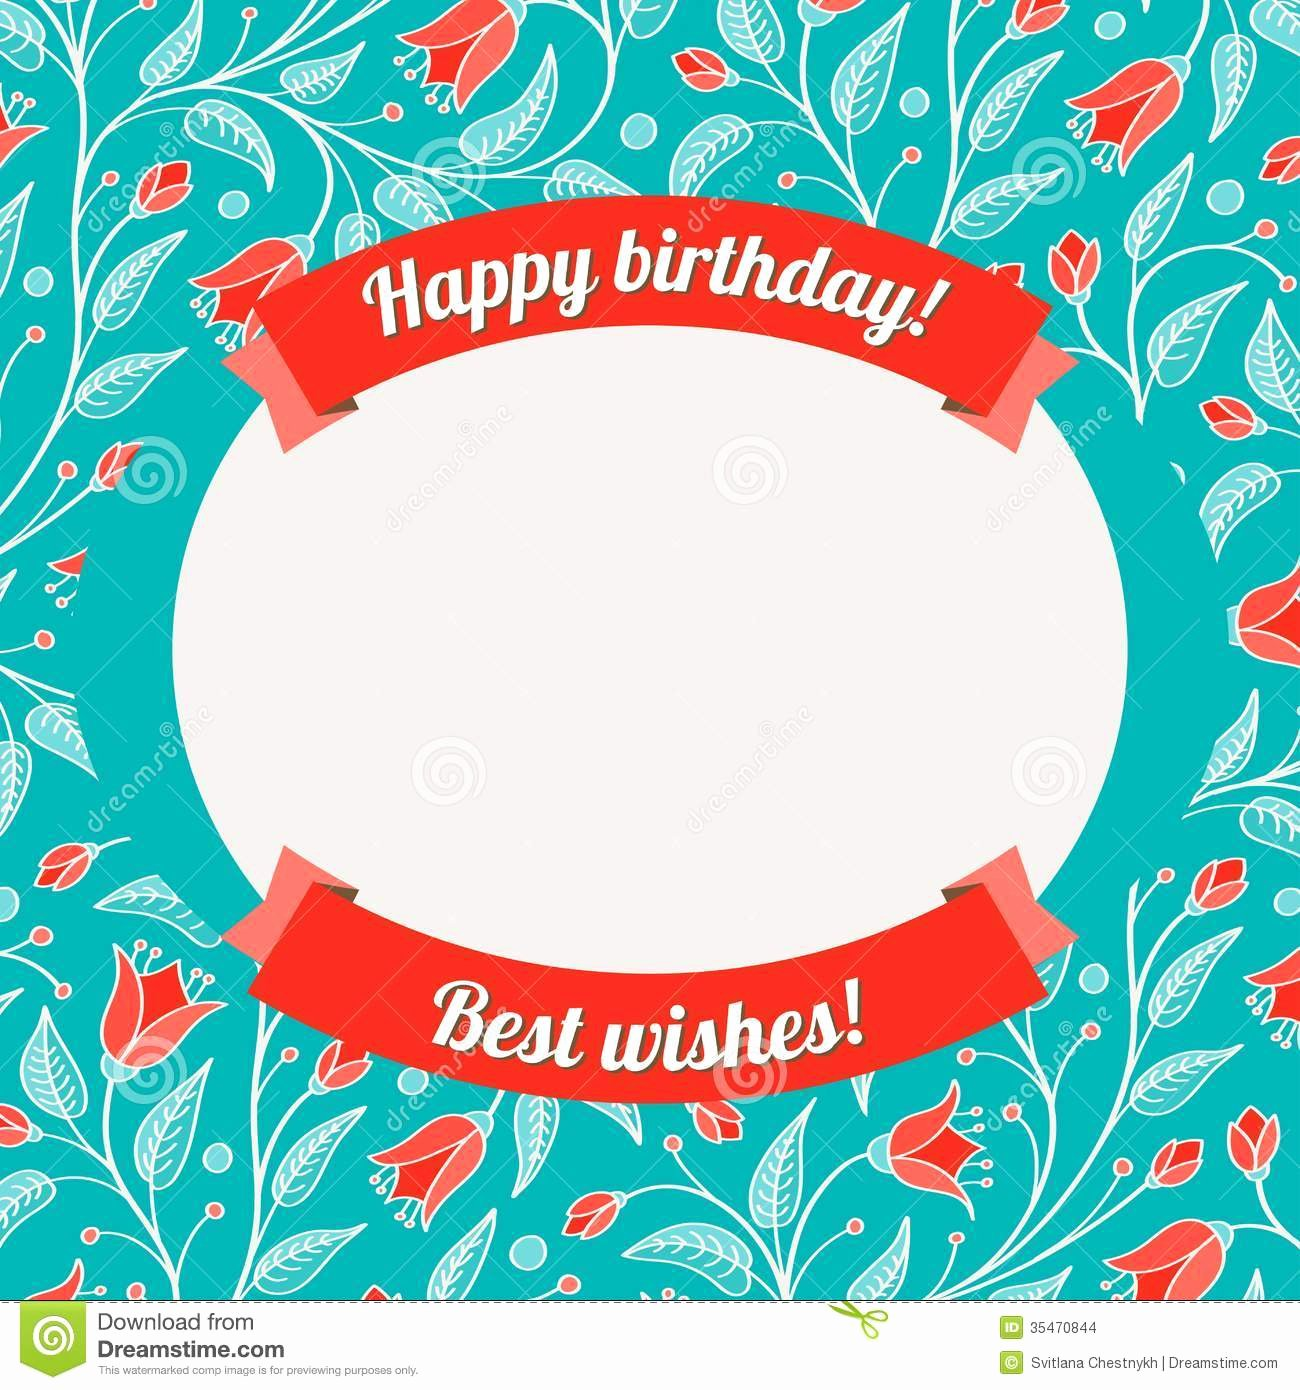 Happy Birthday Card Template Best Of Birthday Card Template